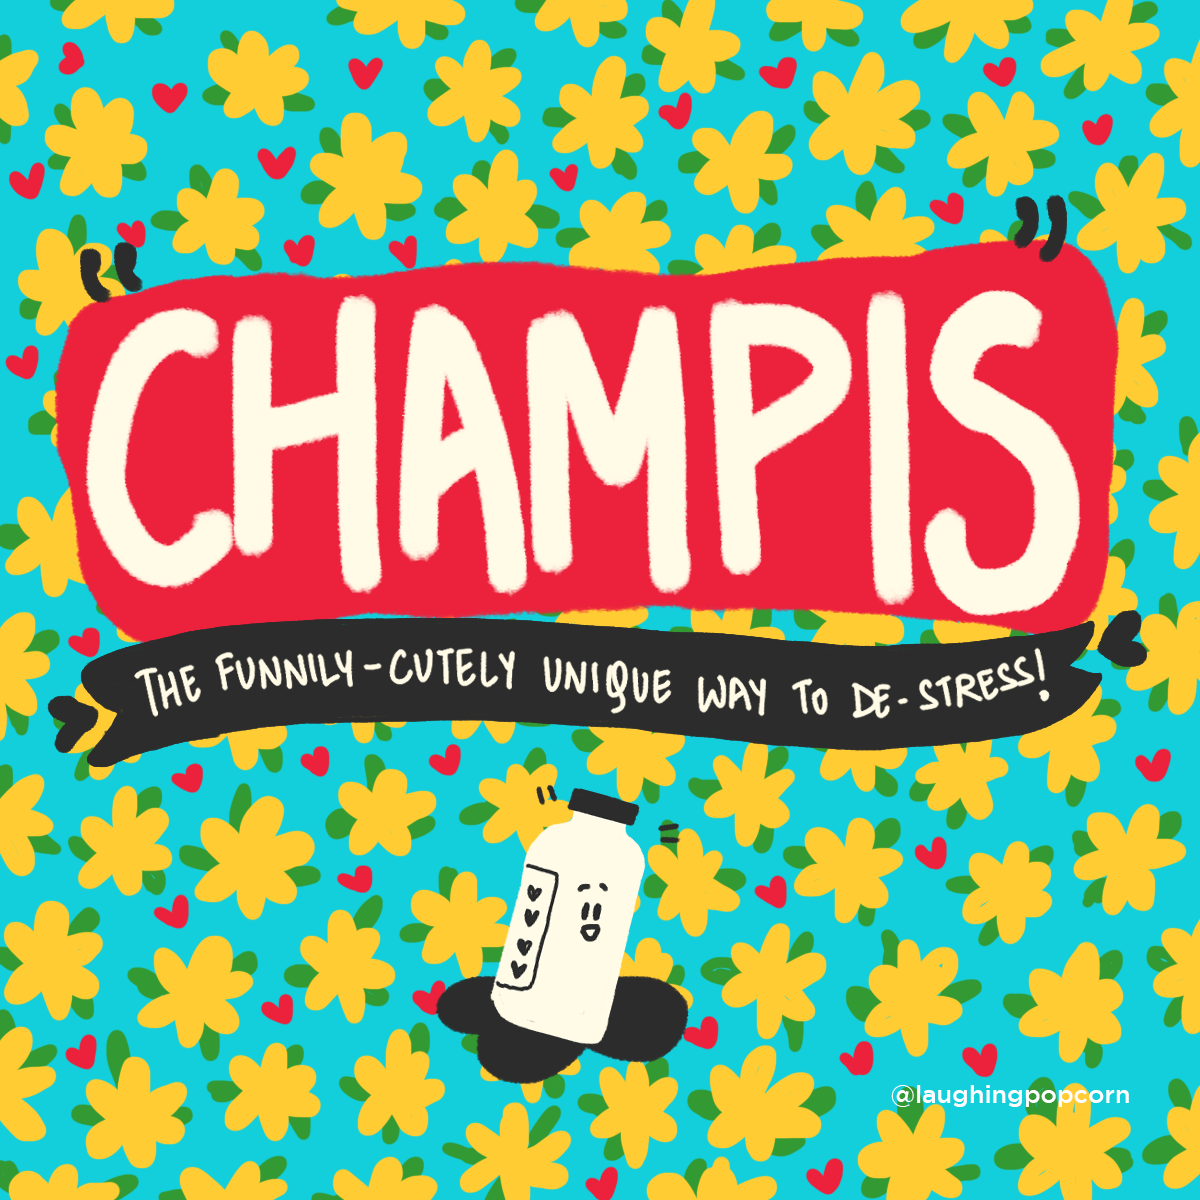 Colorful illustration Creative Direction and Design by Laughing Popcorn showing oil massage champis in a cute way